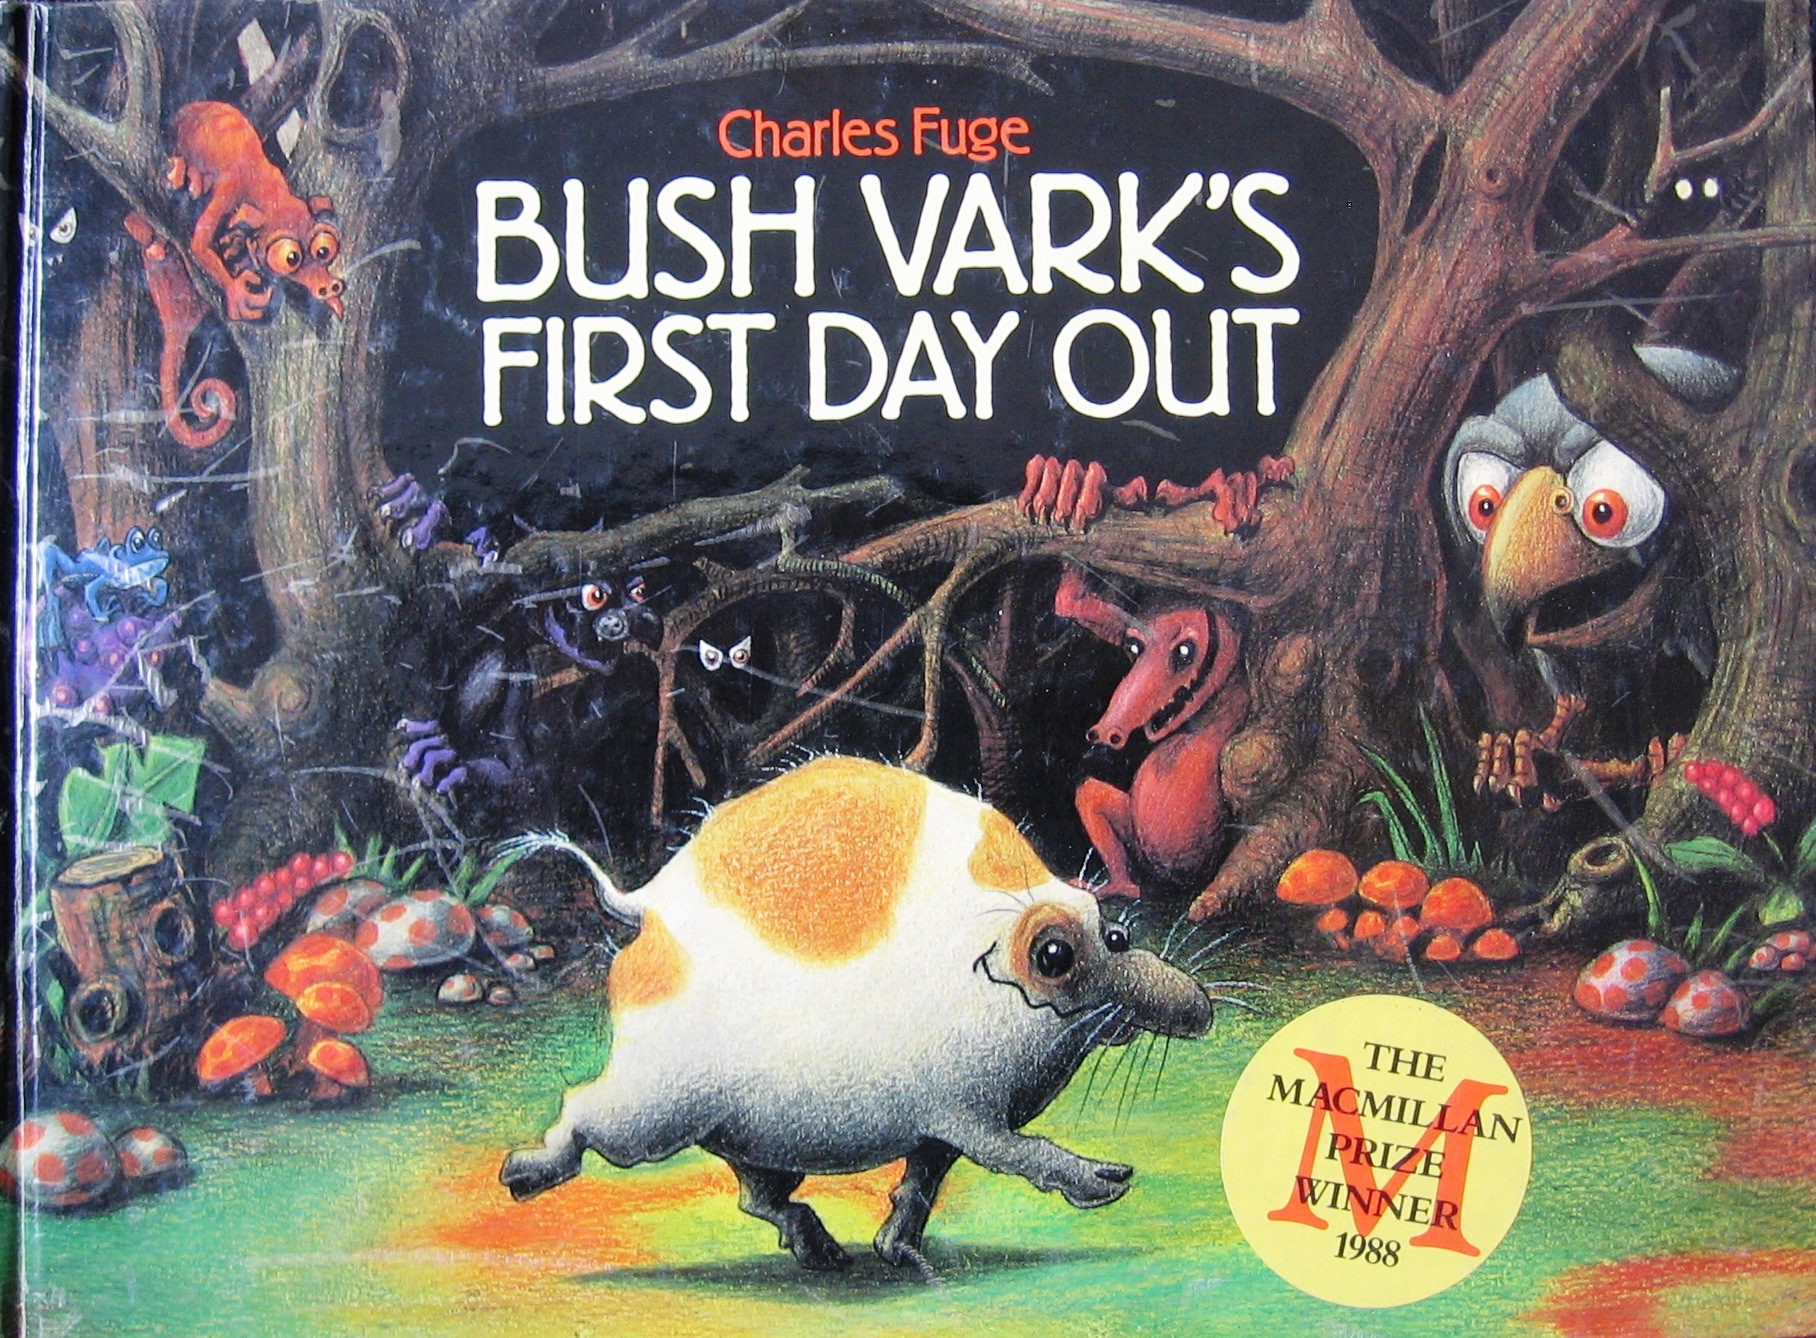 Bush Vark's First Day Out